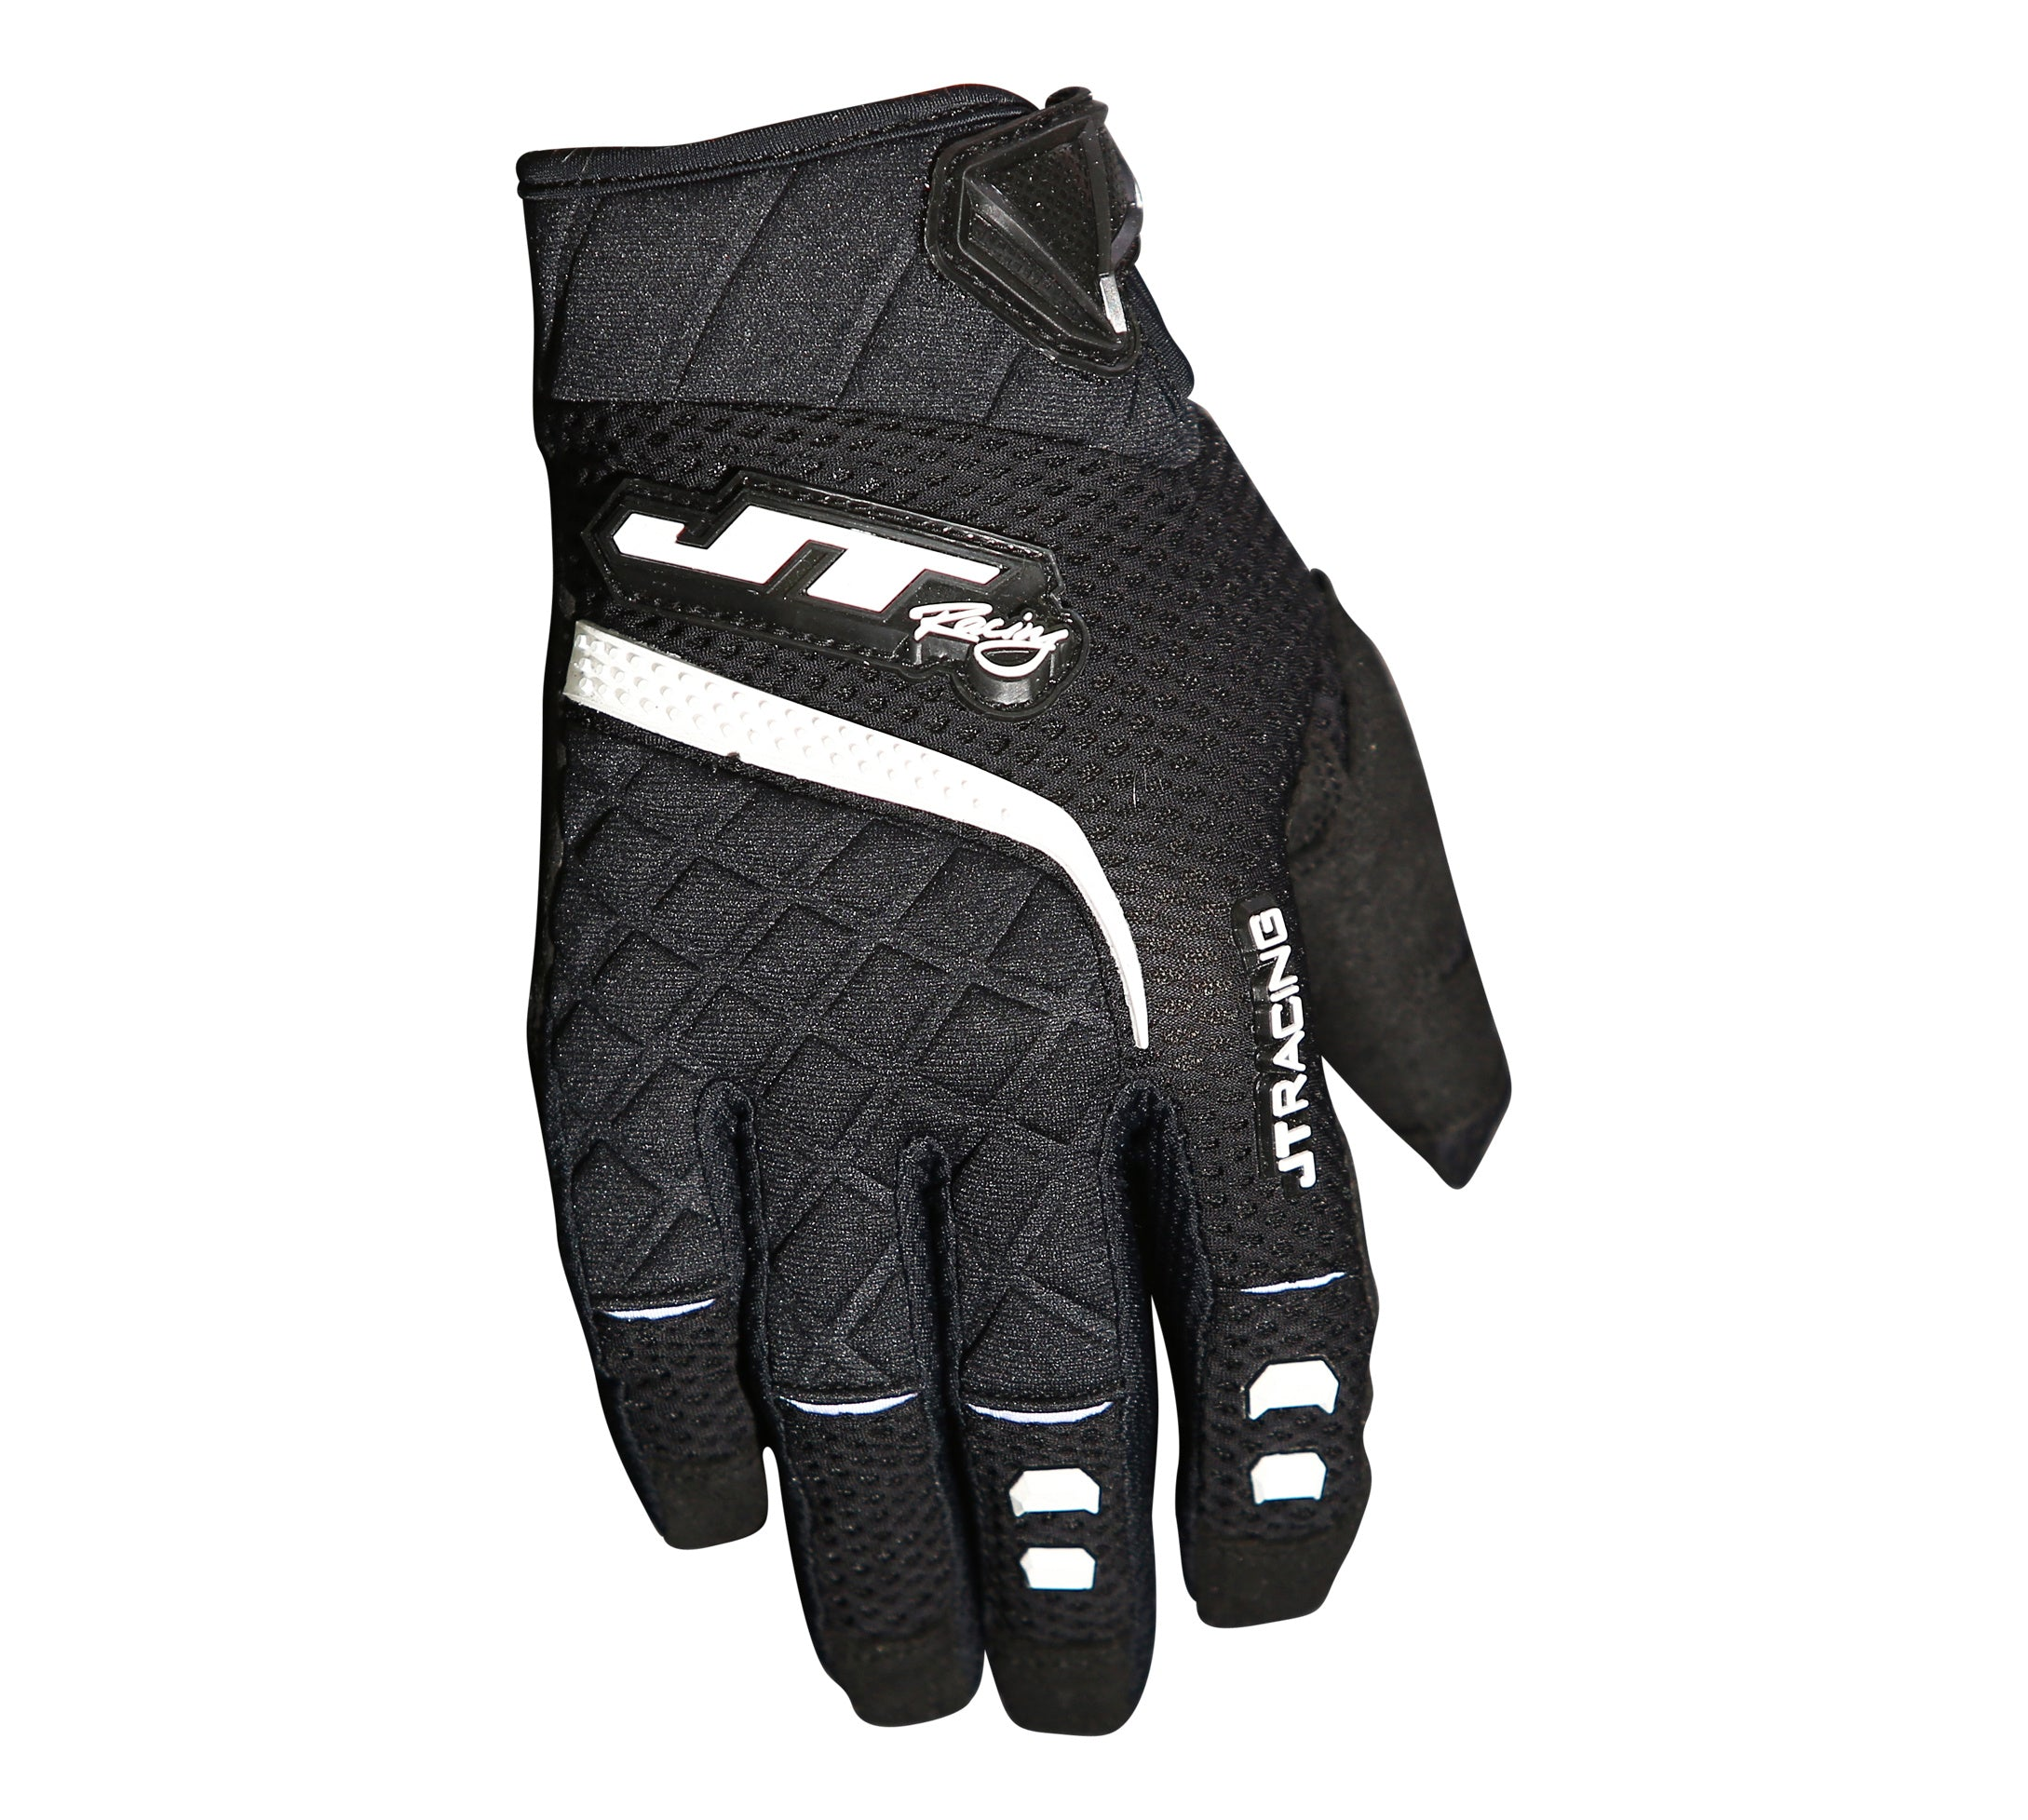 JT Racing USA-Protek Gloves, Black/White